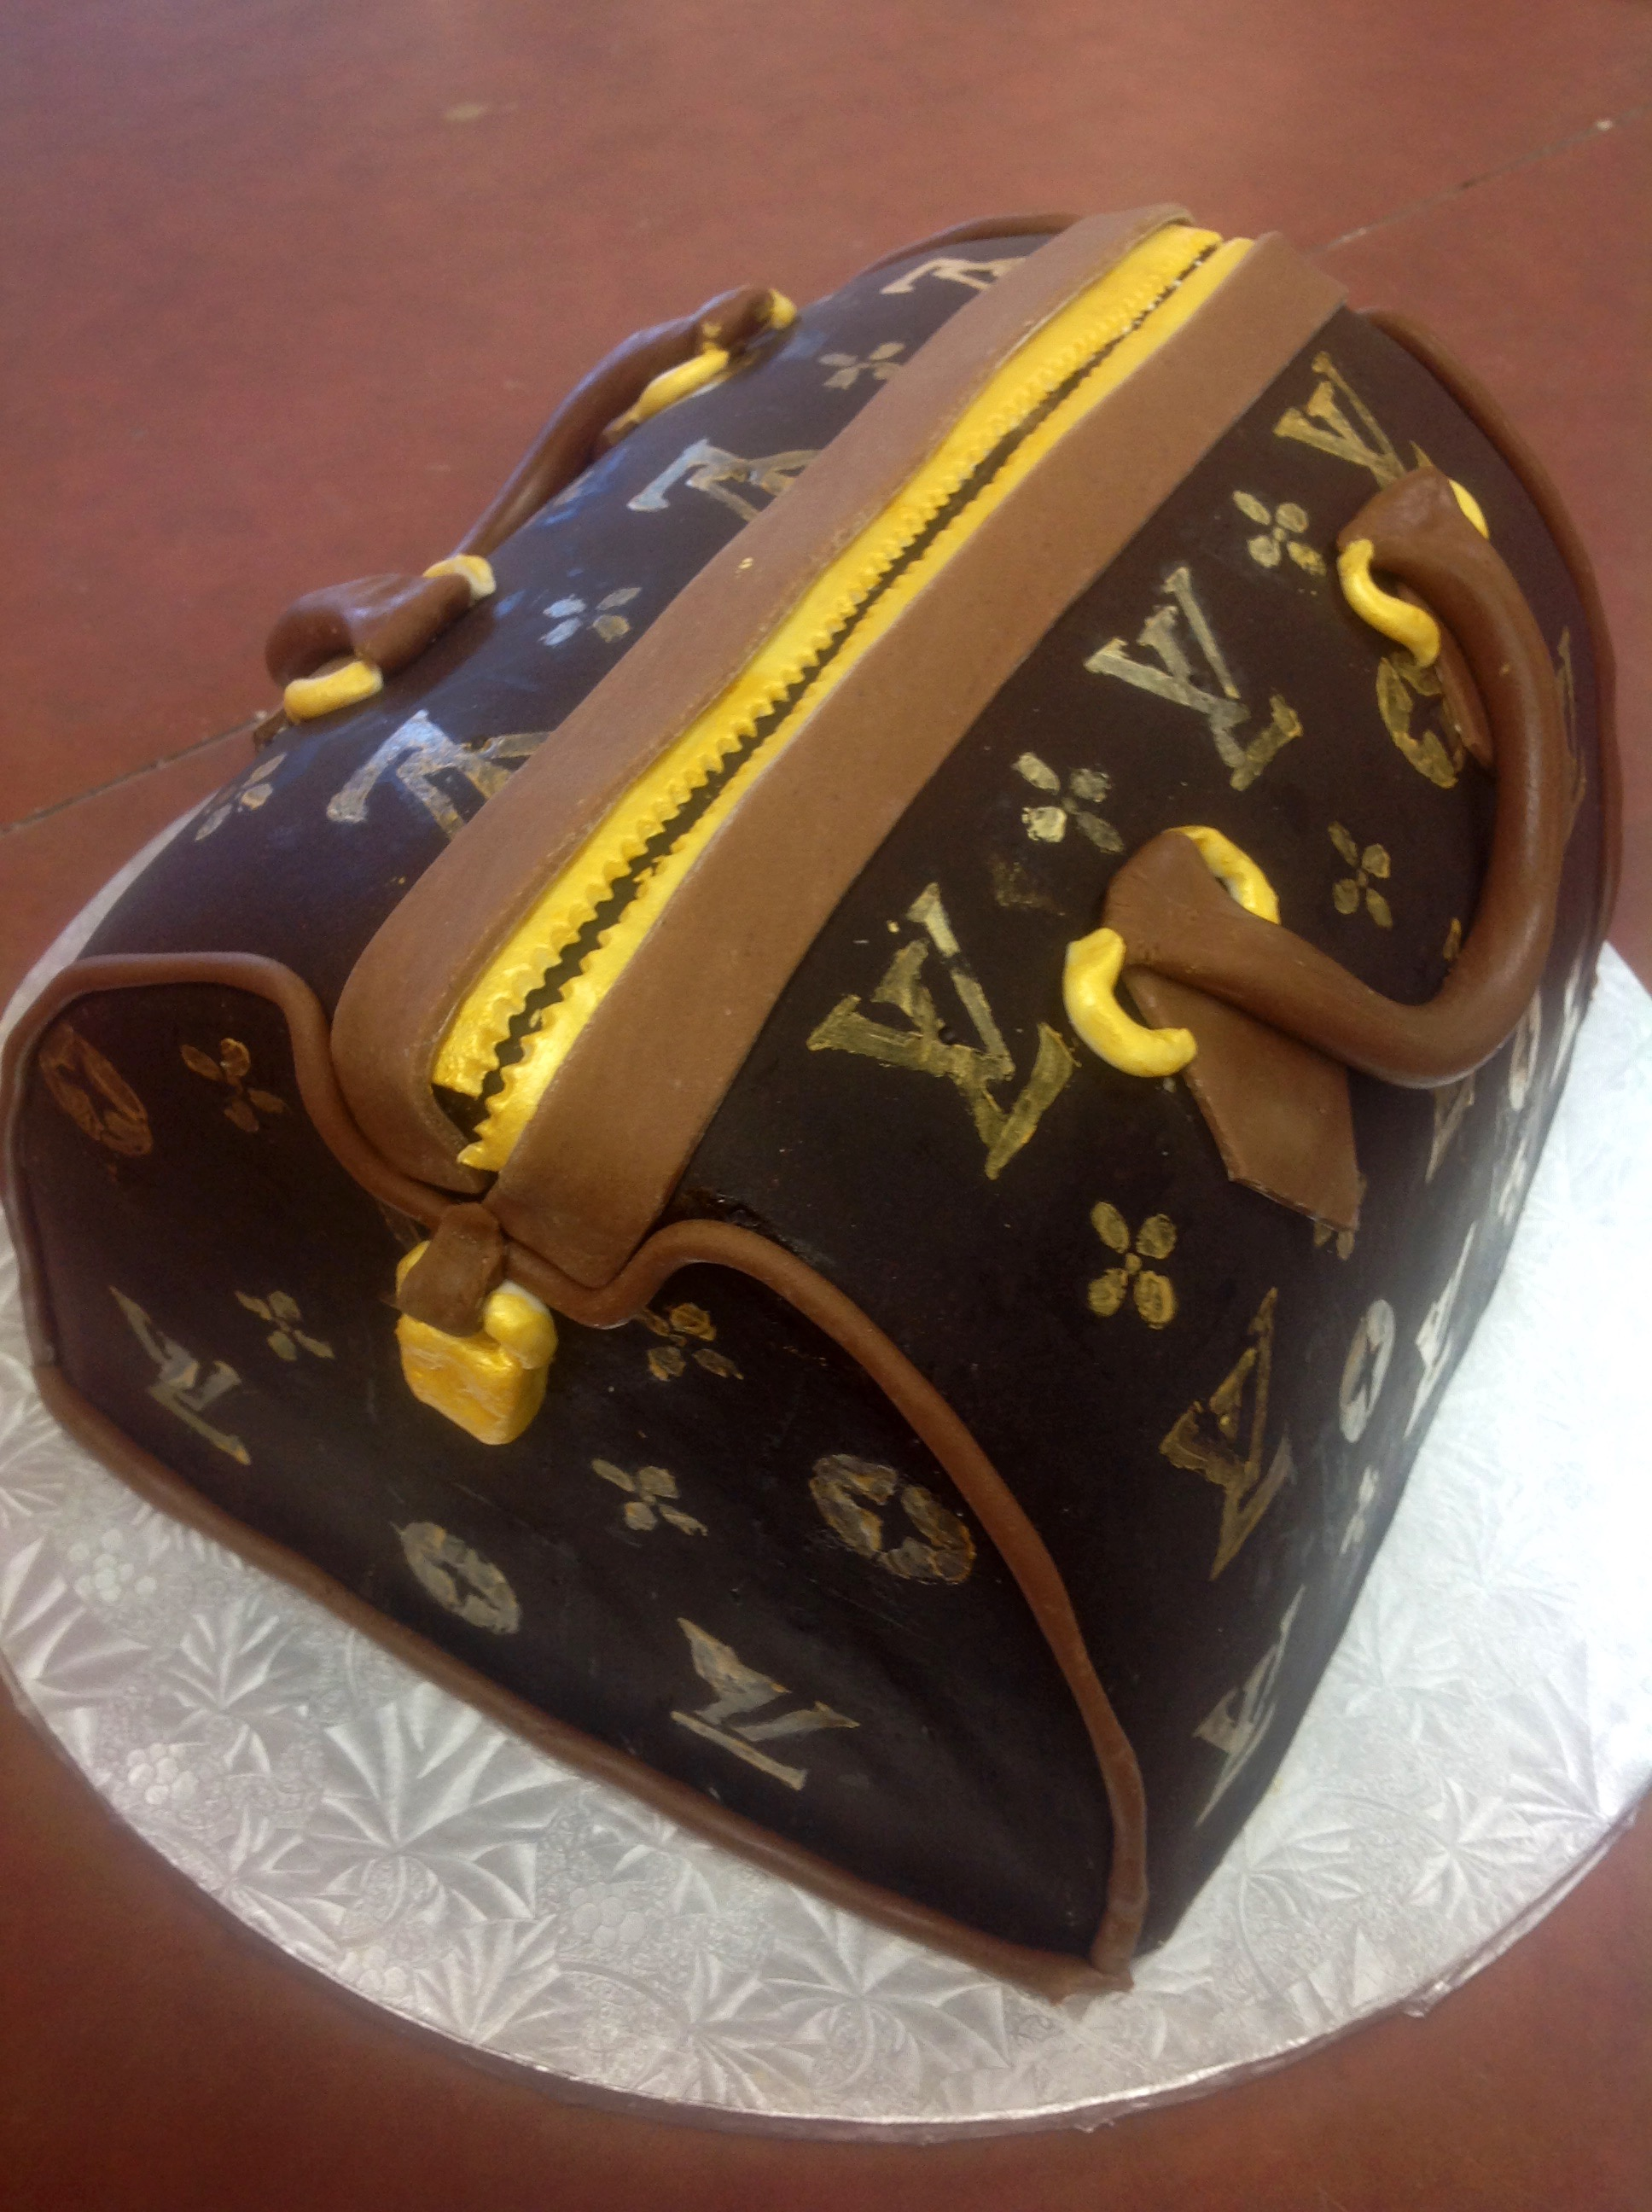 Fondant Covered and Carved Cakes at Dolce and Biscotti Italian Bakery